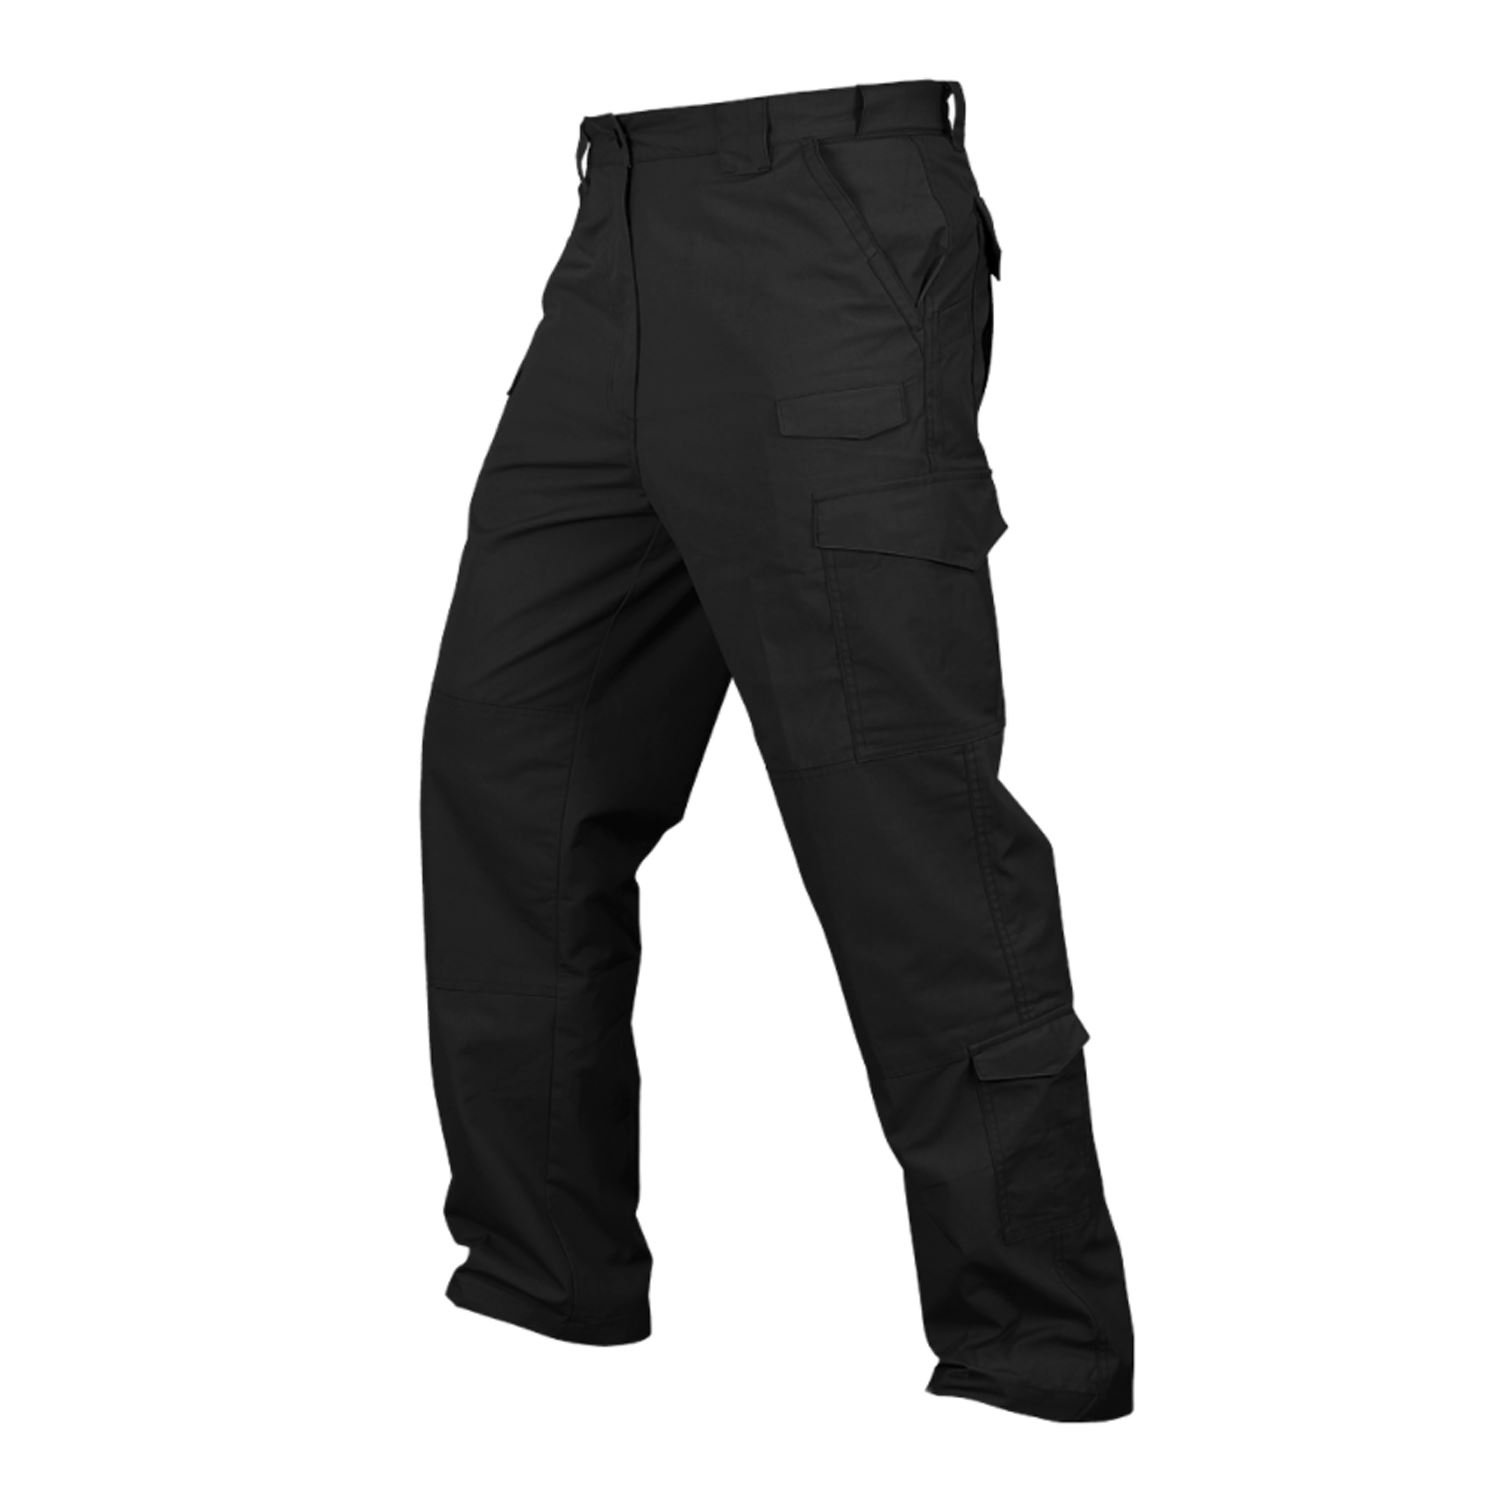 SENTINEL TACTICAL PANTS, BK, 34W X 30L Condor Outdoor